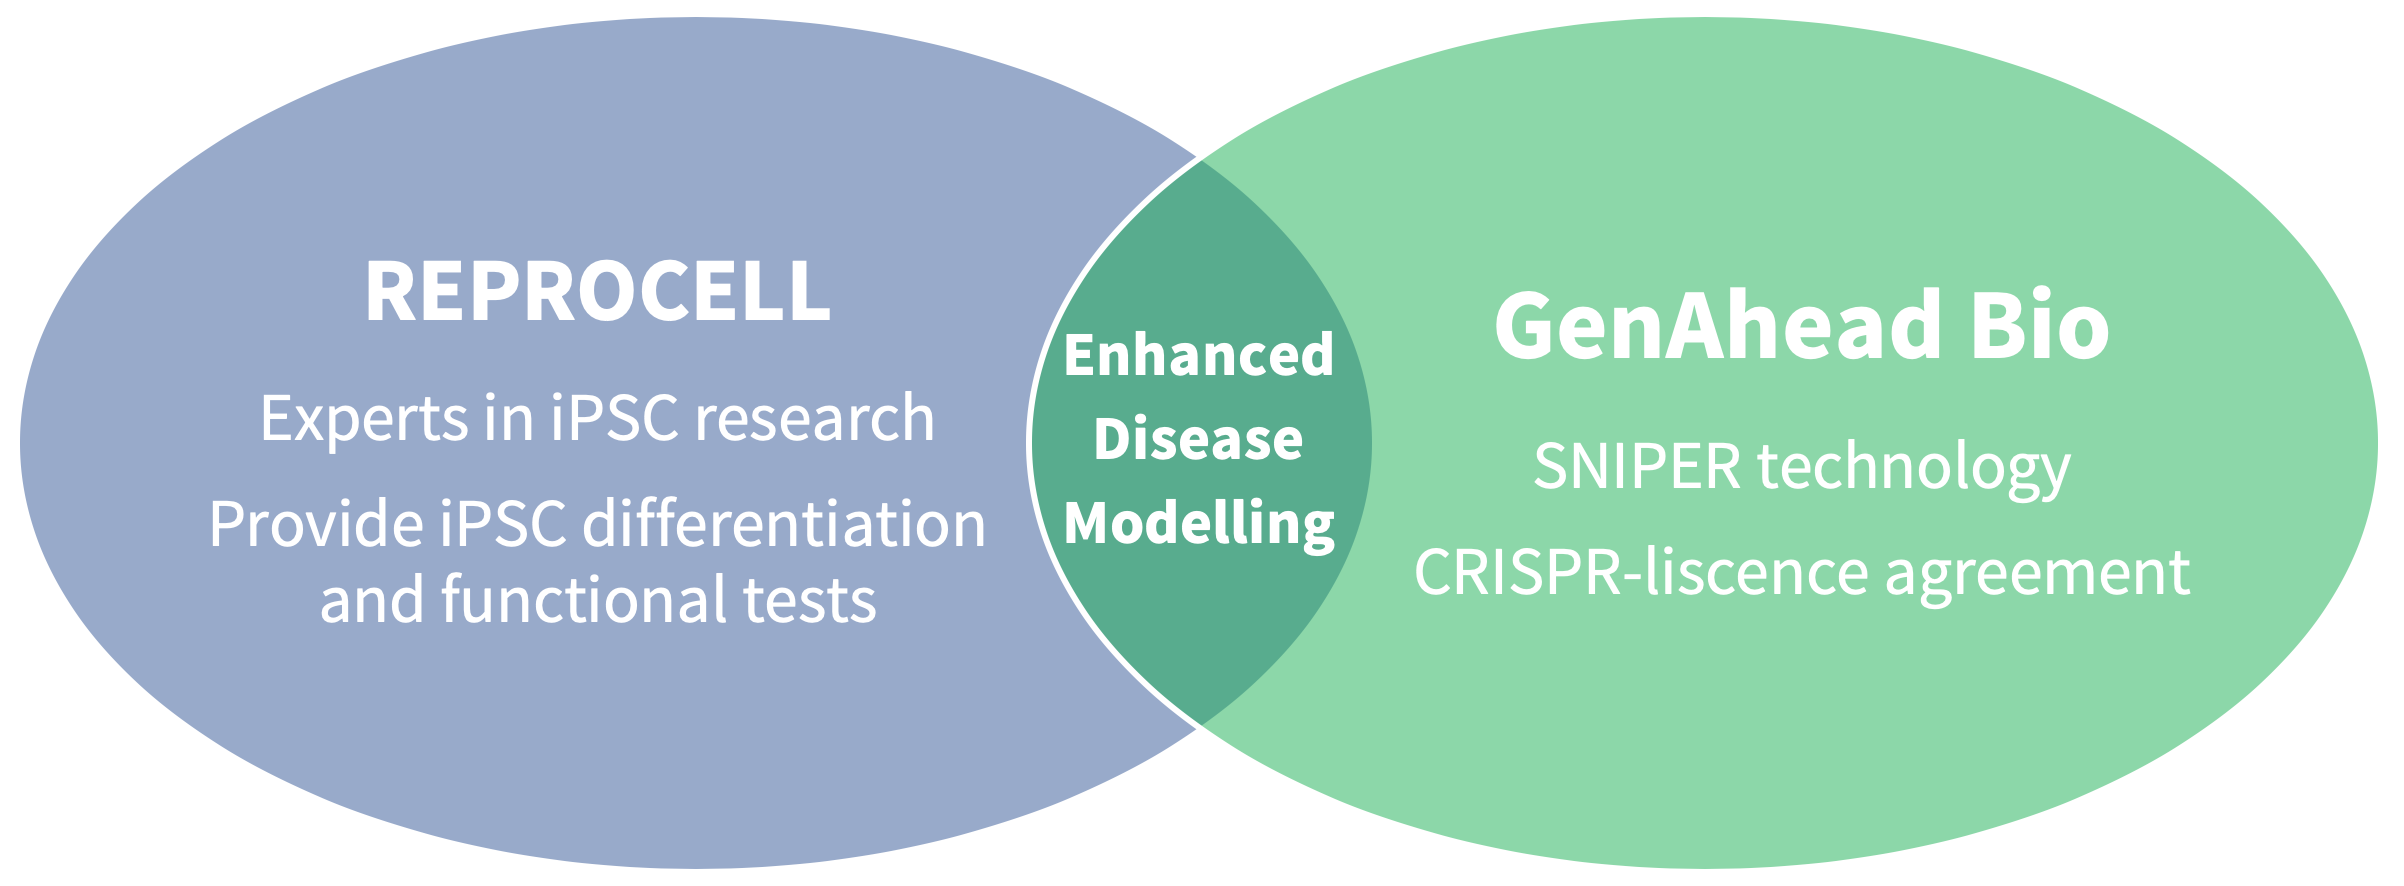 By combining the stem cell expertise of REPROCELL with the gene editing knowledge of GenAhead Bio, researchers can now access CRIPSR-SNIPER gene editing of iPSC cells.